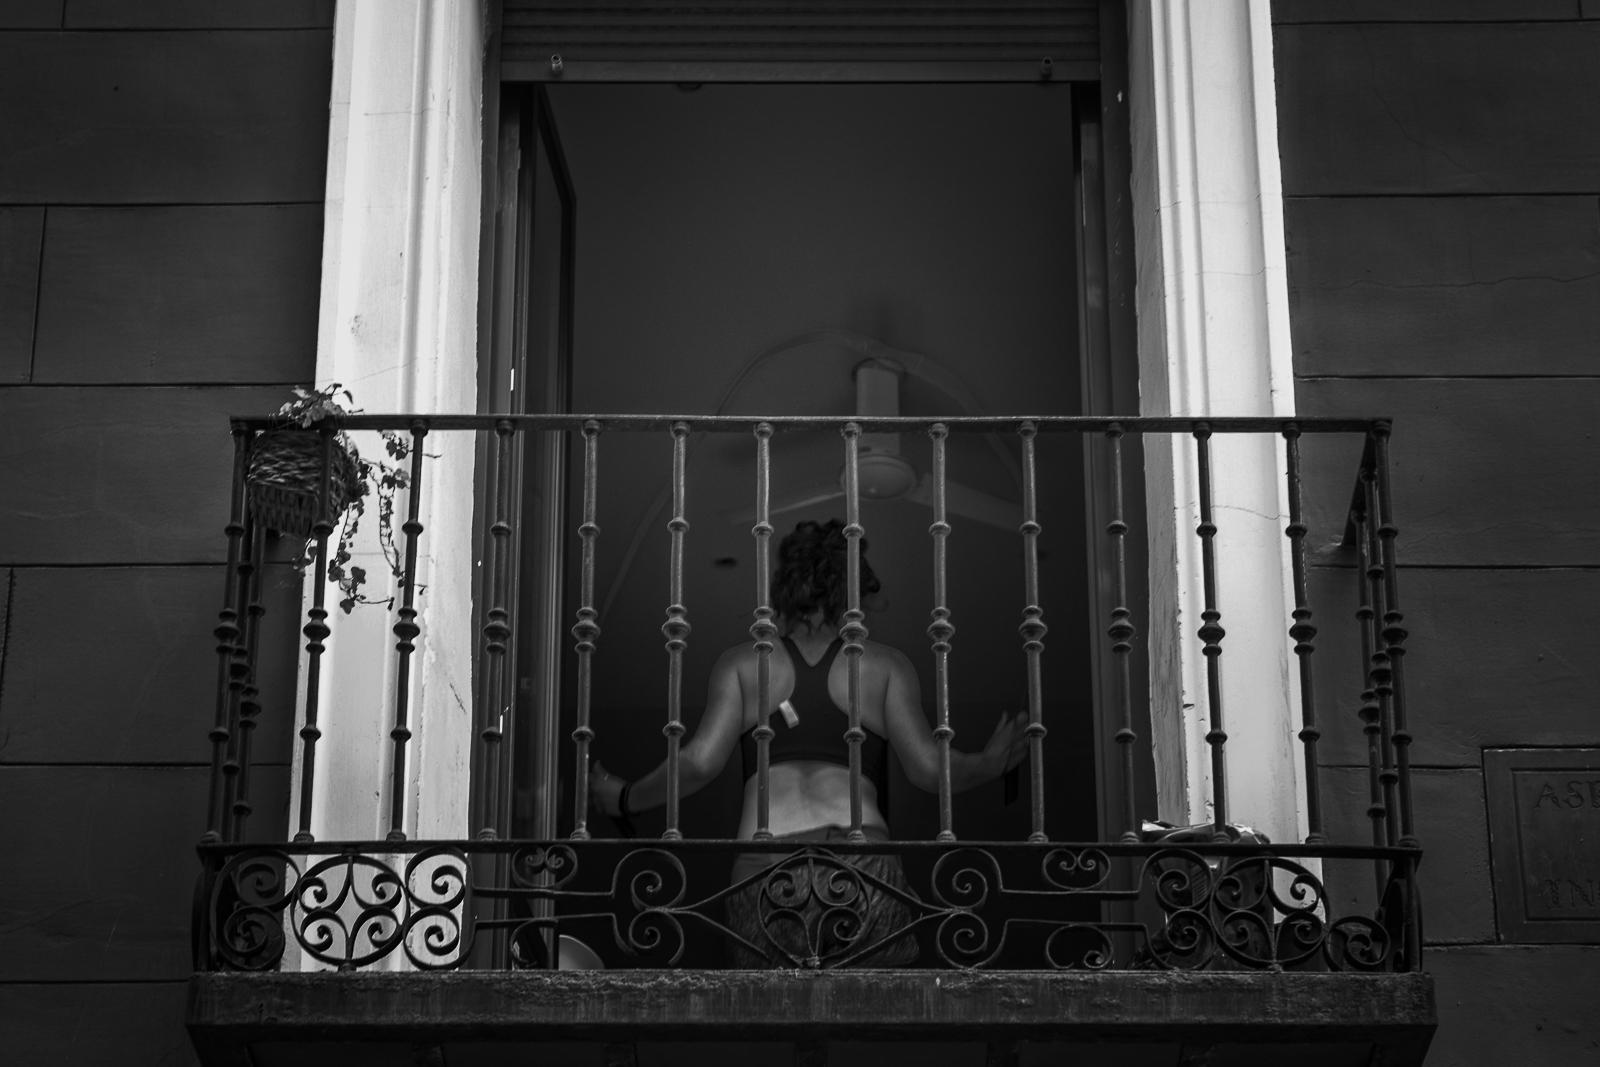 A woman doing exercises in her apartment during the coronavirus lockdown in Madrid Spain.